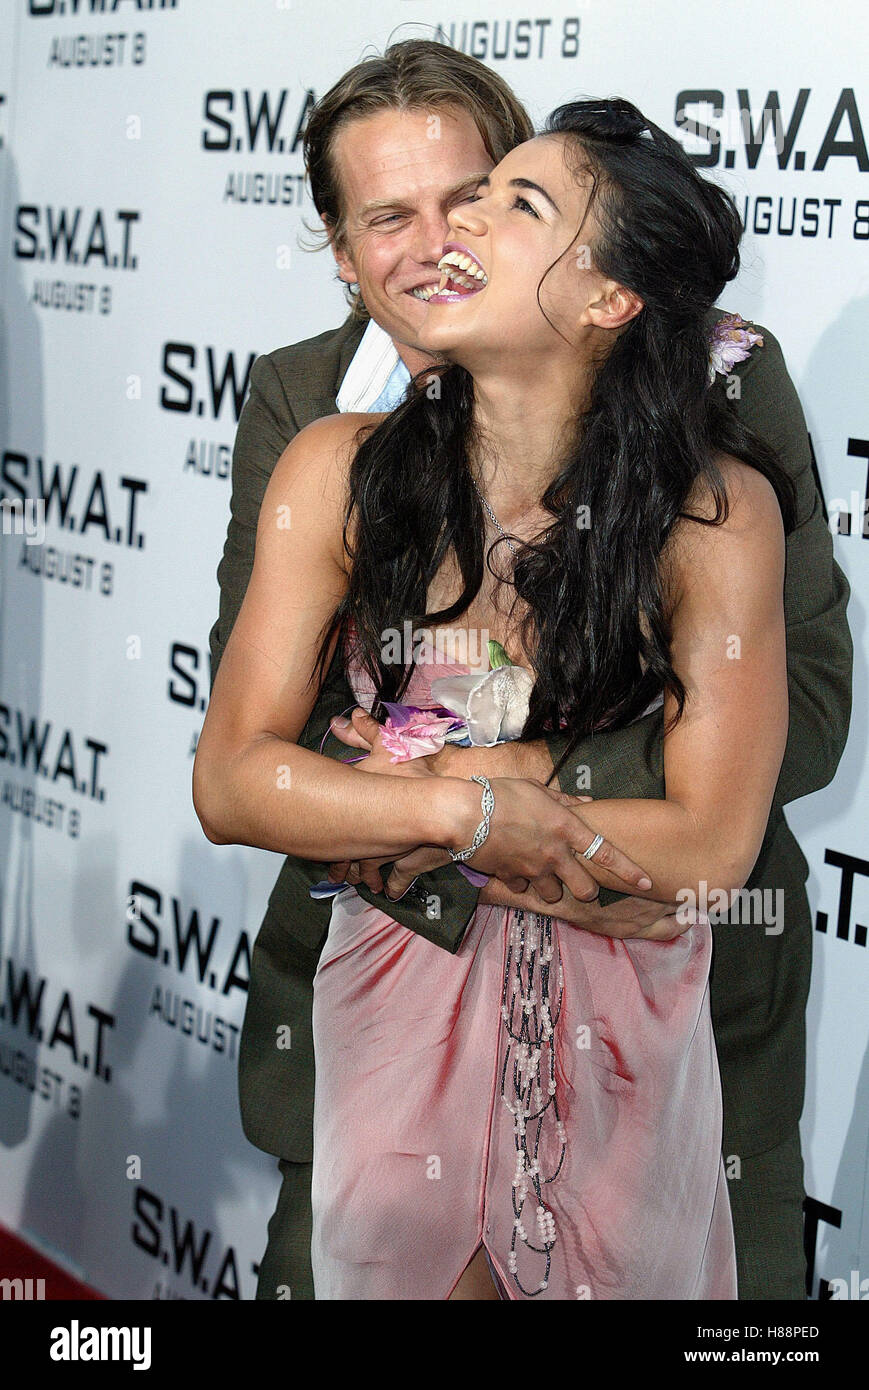 BRIAN VAN HOLT & MICHELLE RODRIGUEZ S.W.A.T.  WORLD PREMIERE WESTWOOD LOS ANGELES USA 30 July 2003 - Stock Image